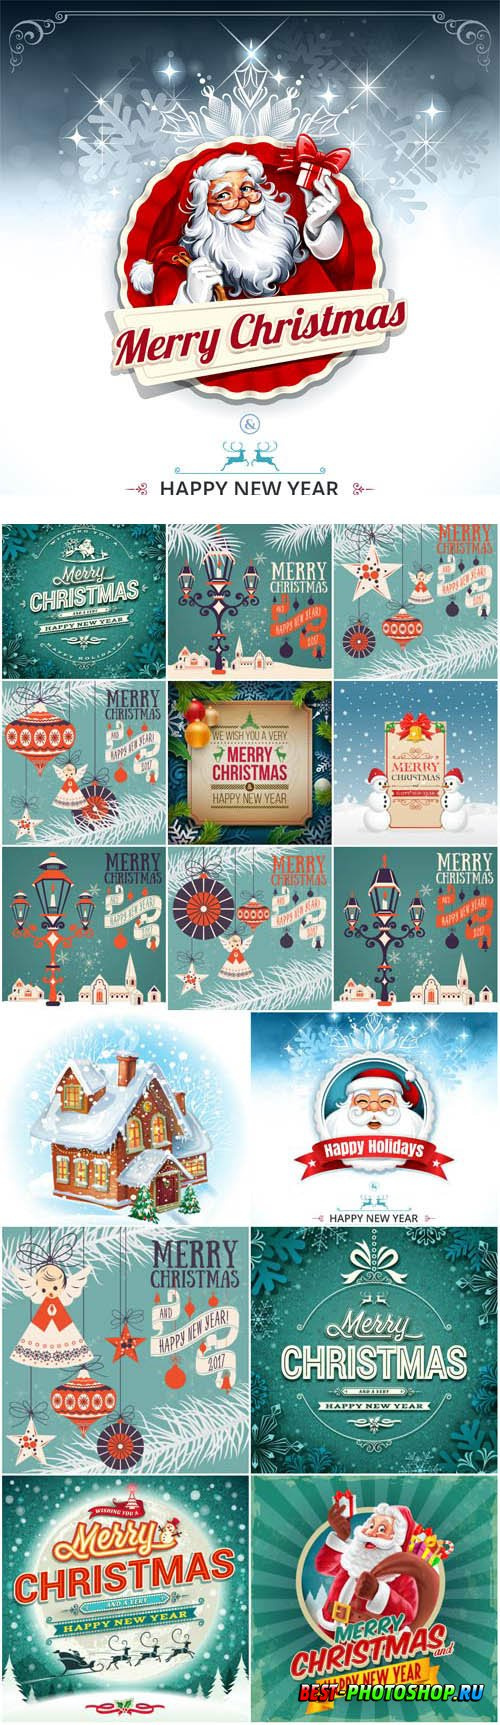 New Year and Christmas illustrations in vector 58